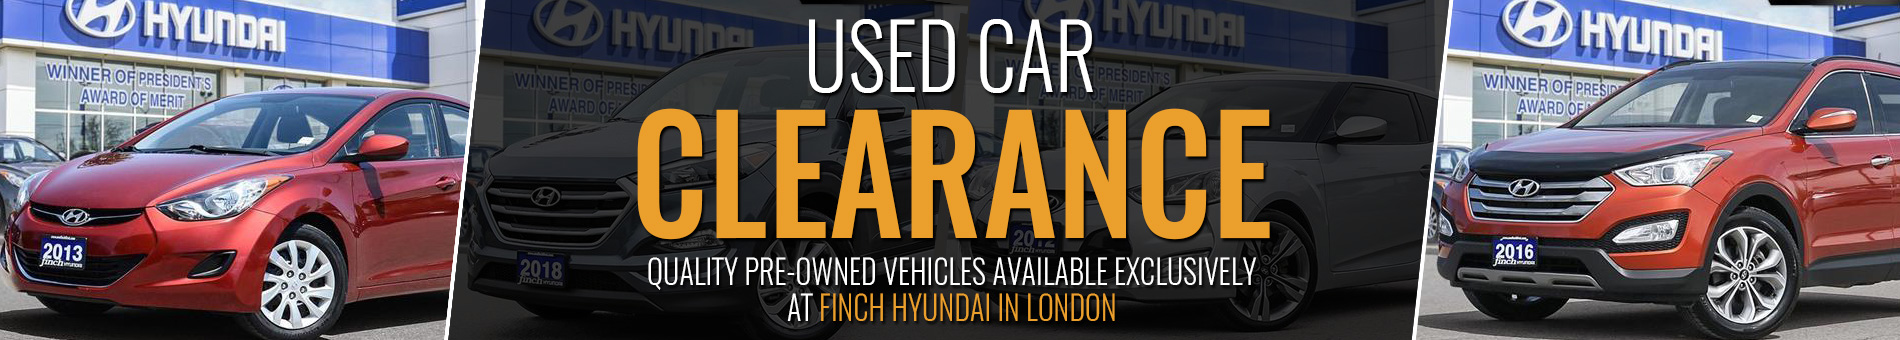 Outstanding Used Cars, Trucks and SUVs in London Ontario at Clearance prices from the Pre-Owned Vehicles department at Finch Hyundai in London